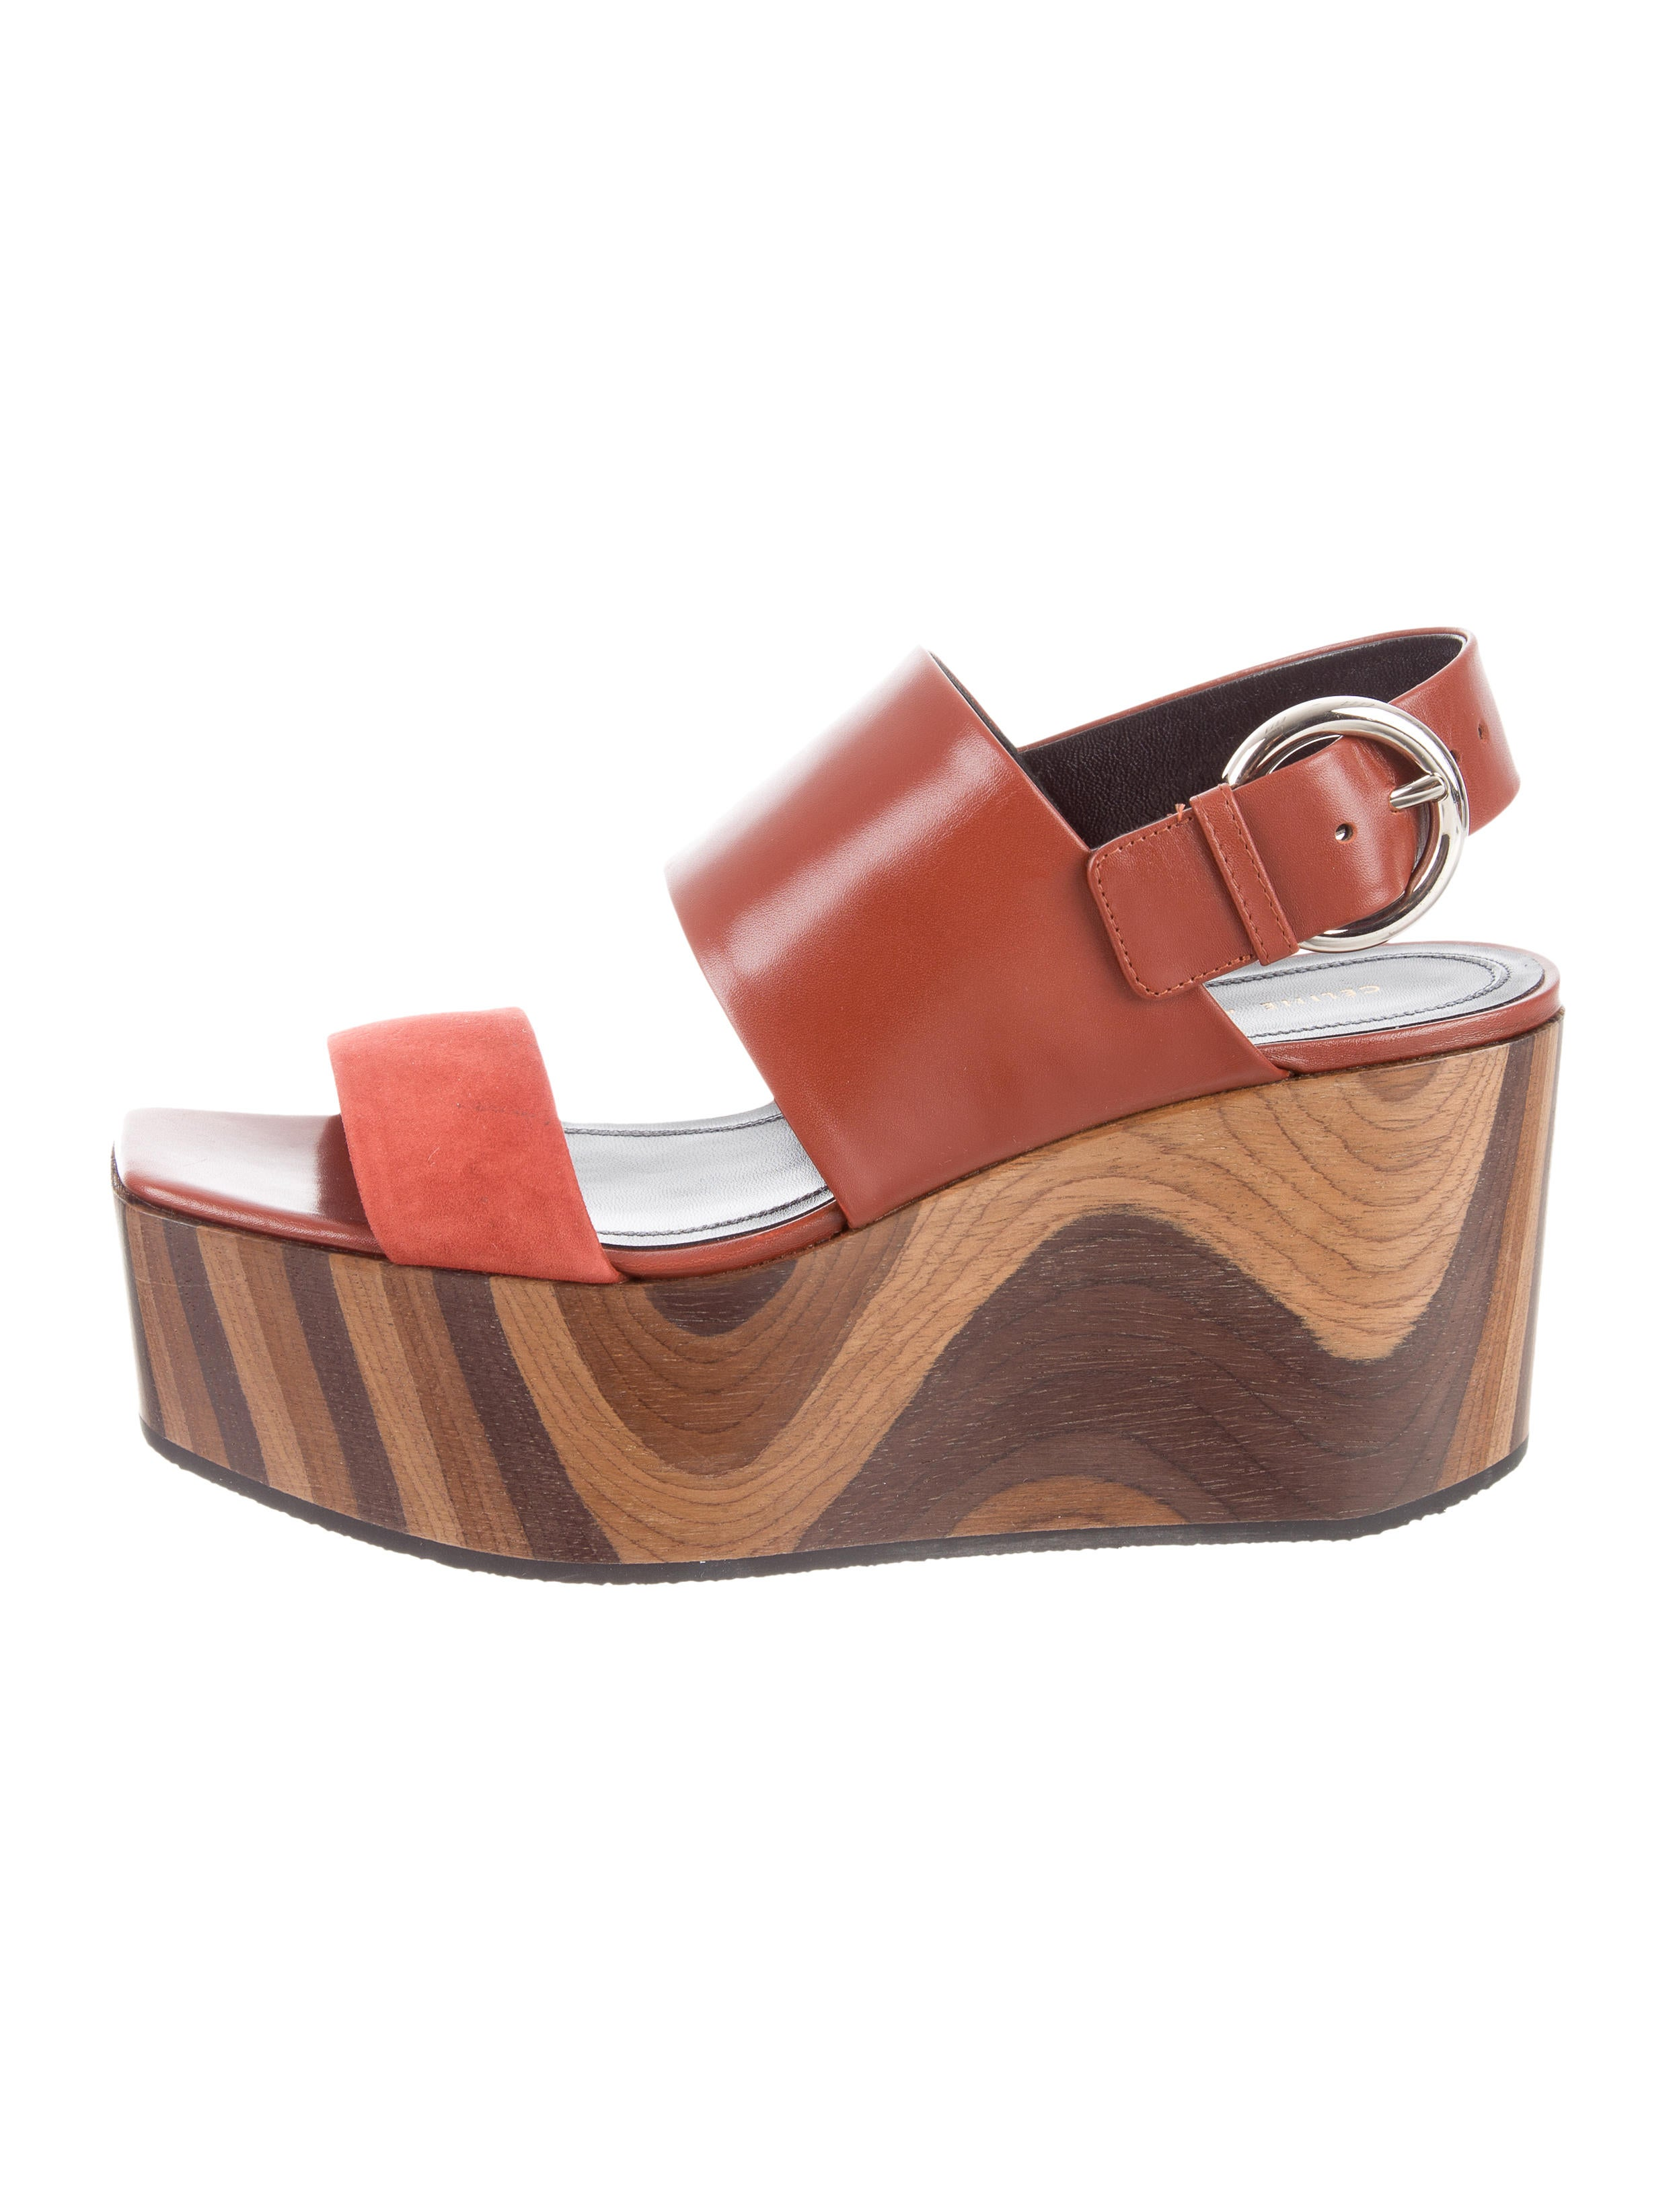 Céline Leather & Suede Wedge Sandals w/ Tags cheap sale 2014 new outlet wholesale price AcnjkKIFY